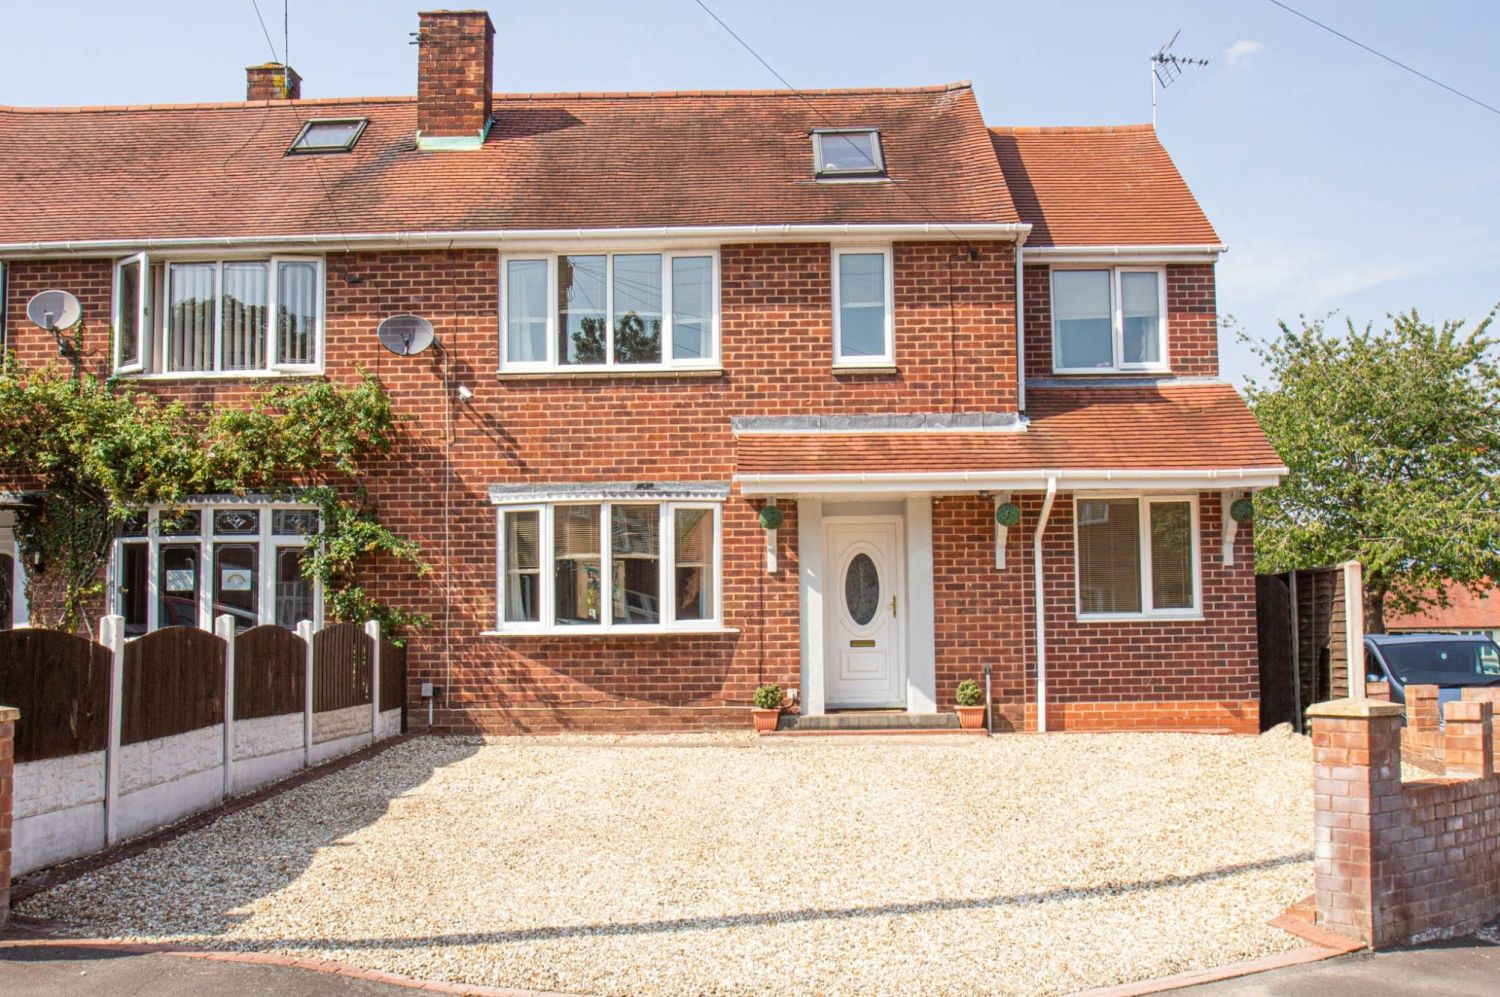 4 bed semi-detached for sale in Oak Street, Kingswinford - Property Image 1